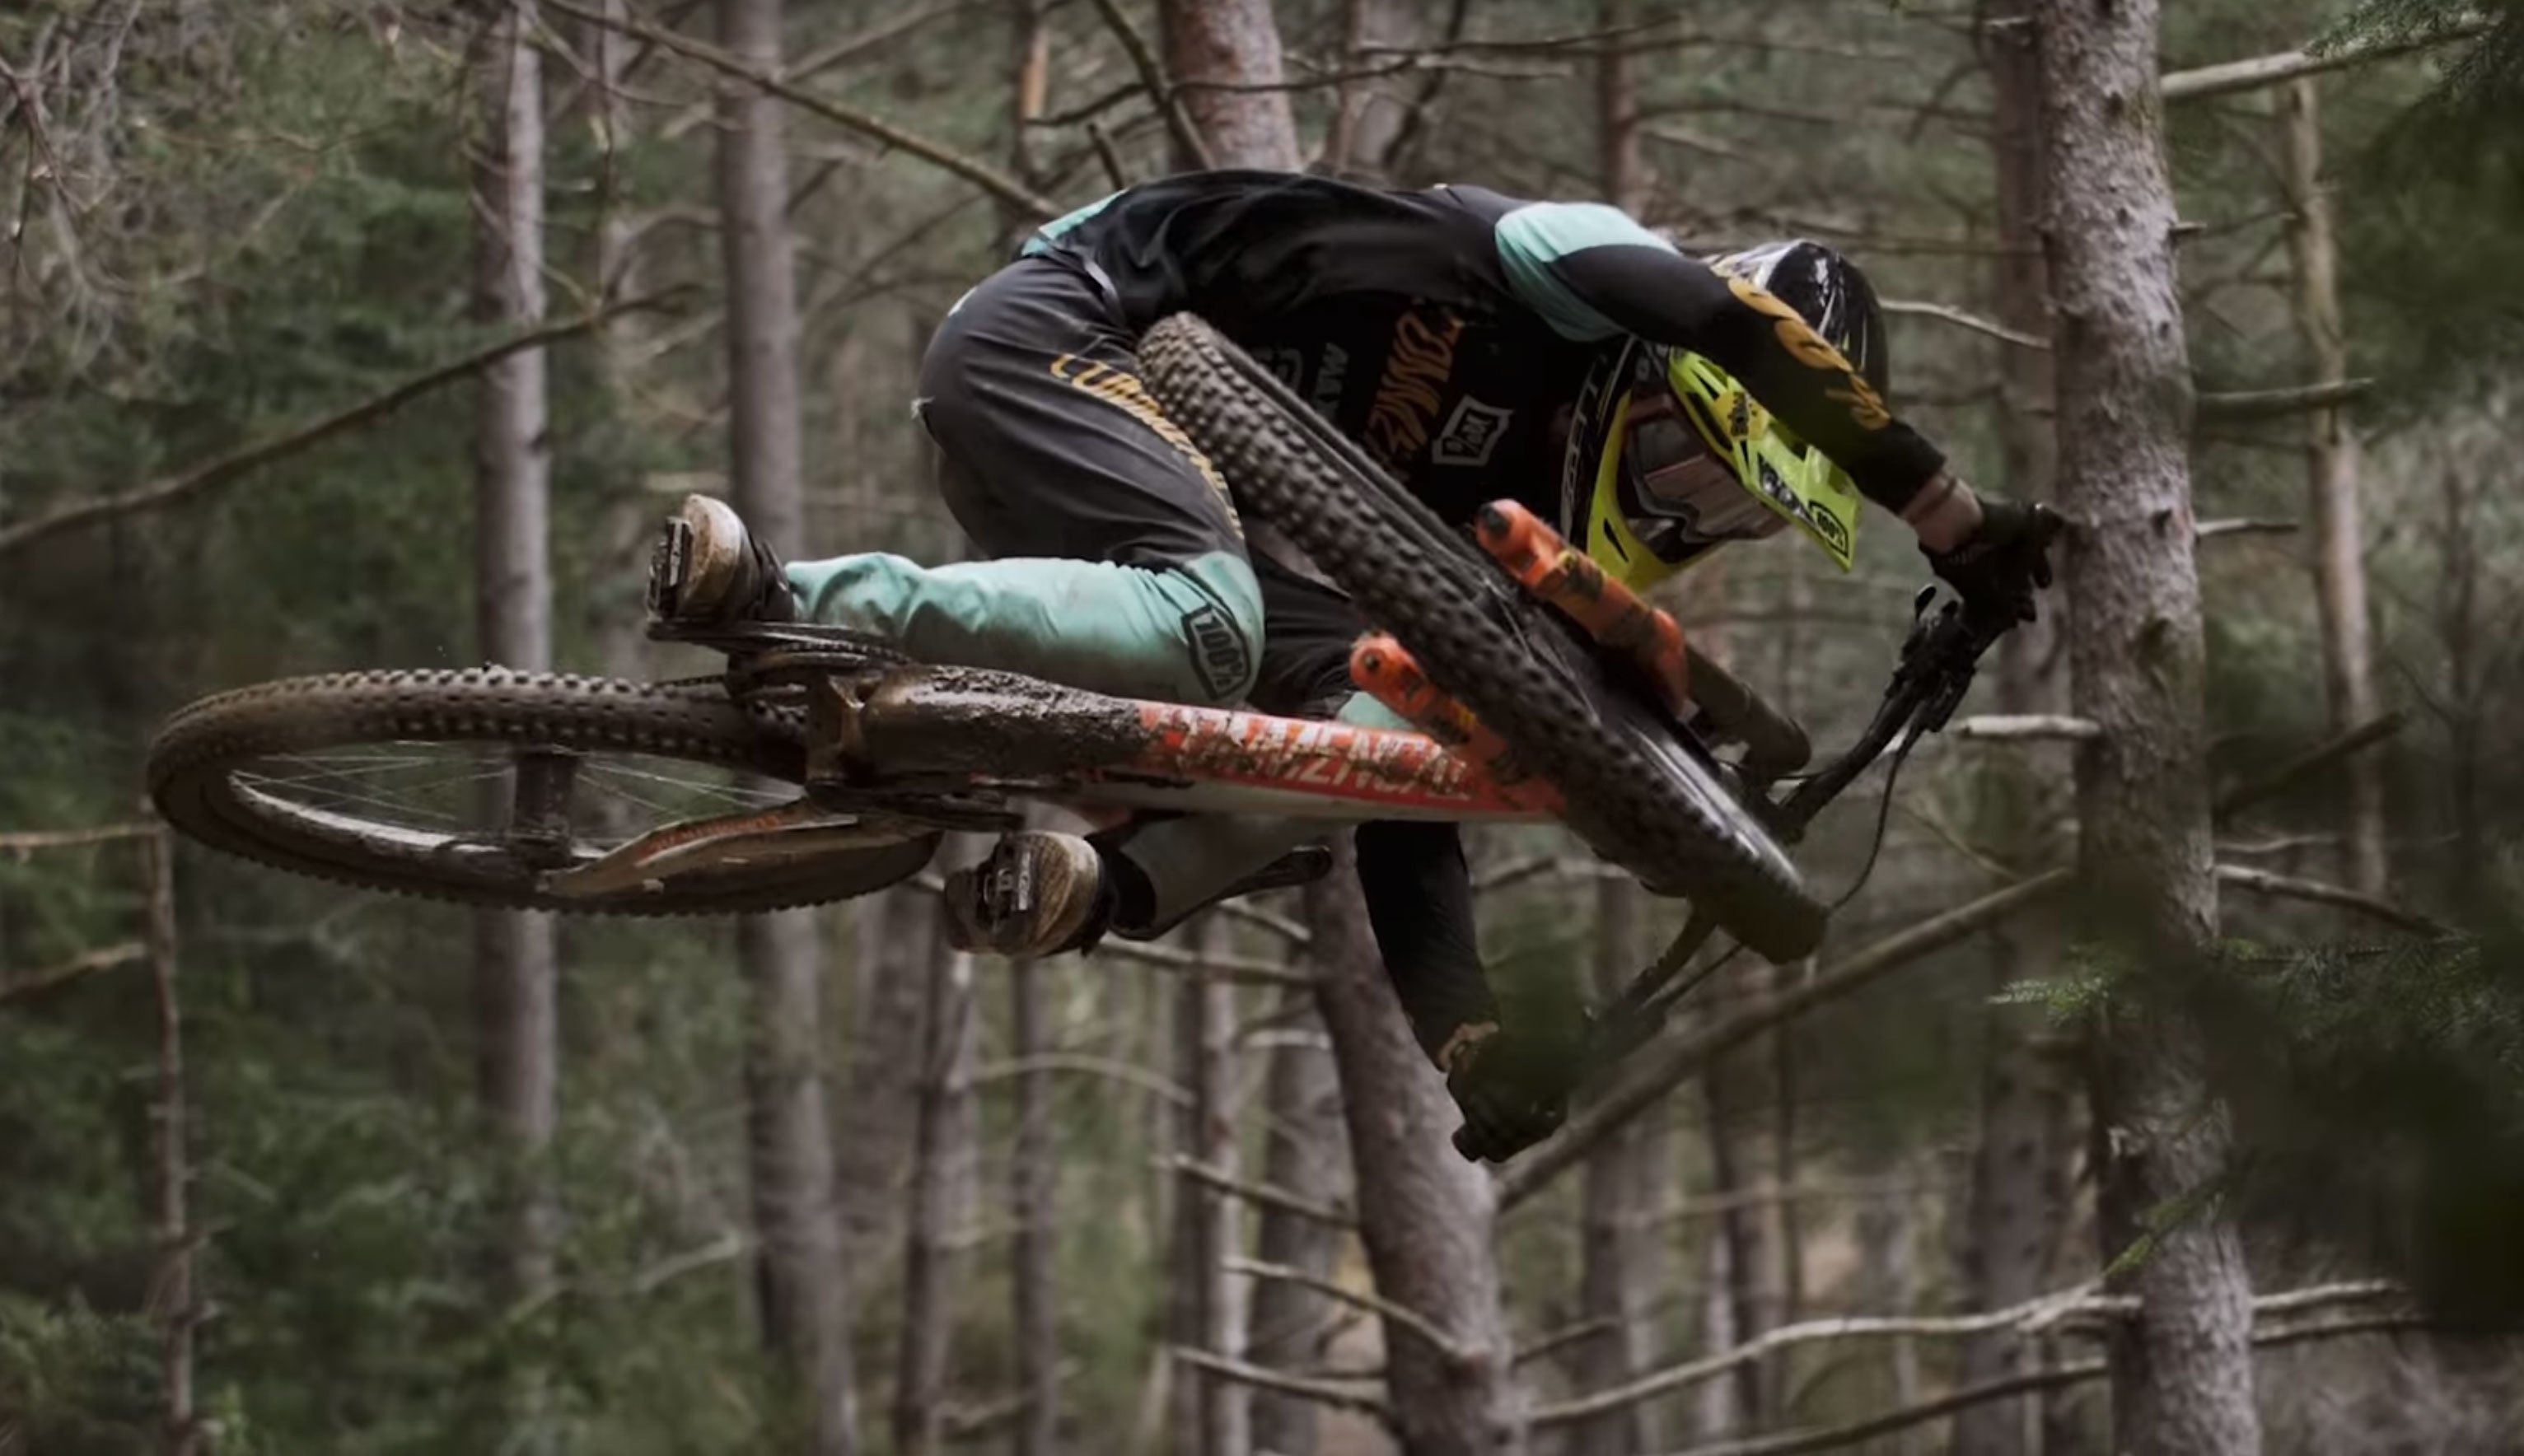 """Our Own Way"" Film by Frix Frix and Gaetan Clary"